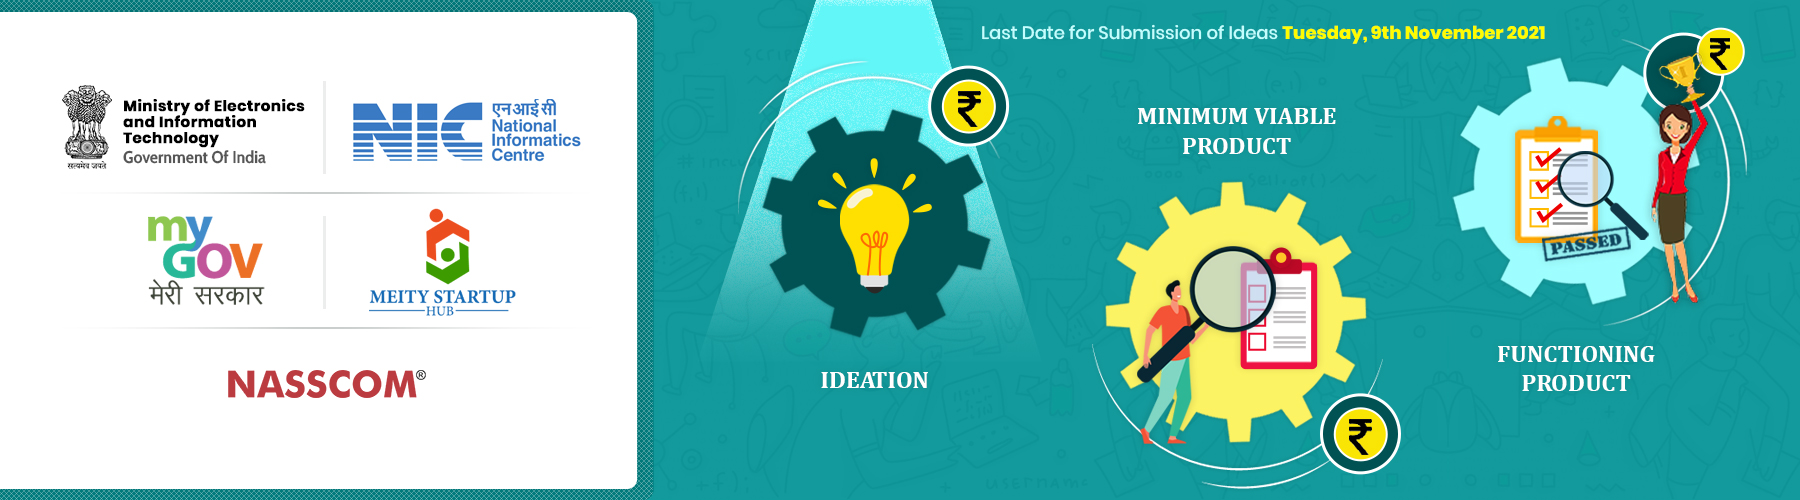 Ministry of Electornics & Information Technology, NIC, MyGov, MeitY Startup Hub, NASSCOM collaborate to invite Startups